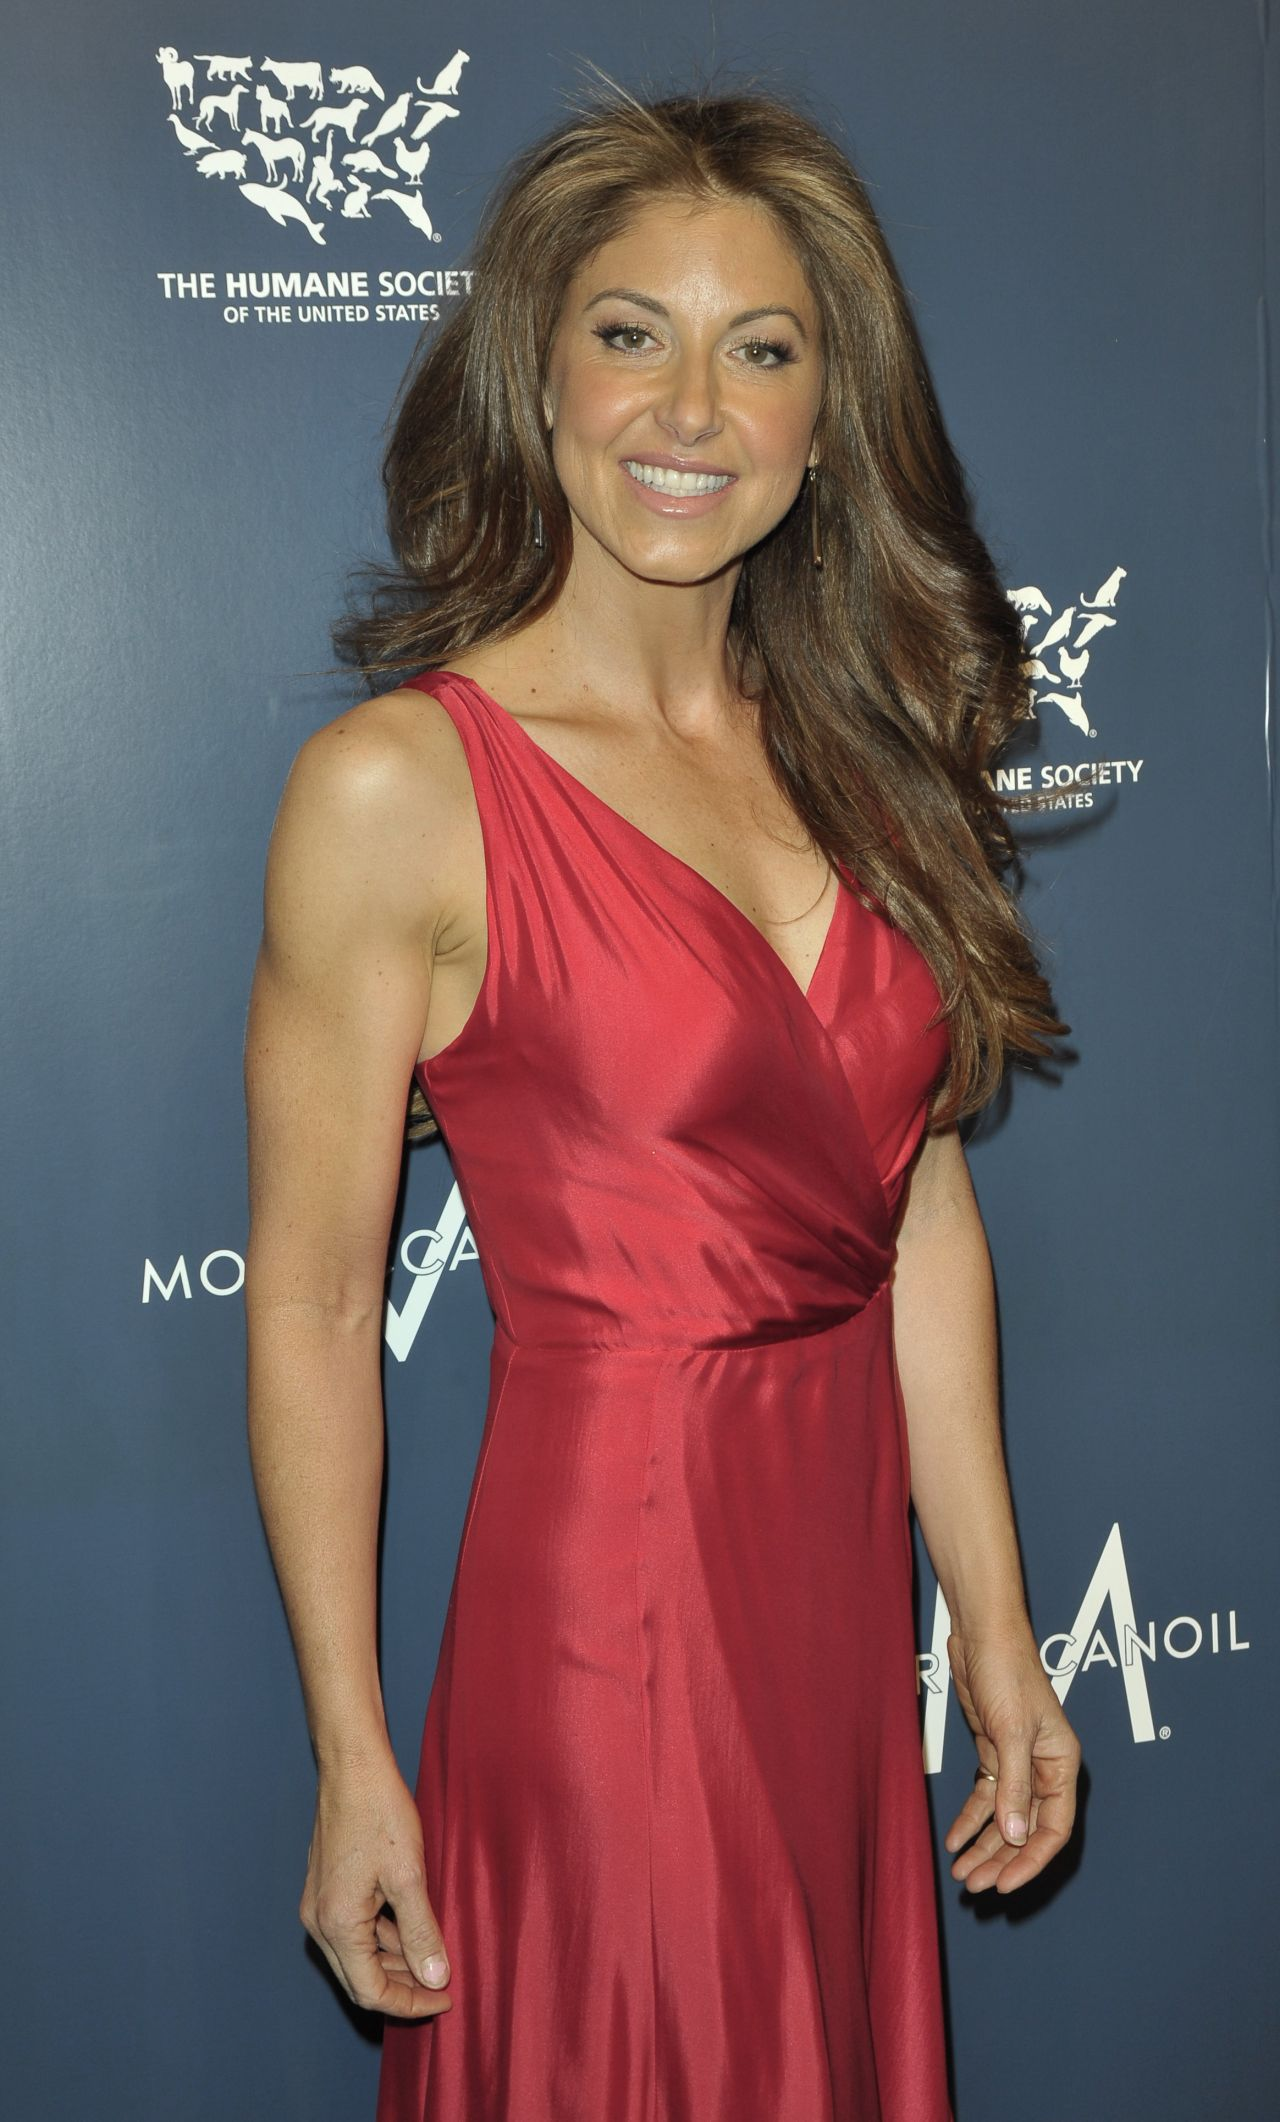 Dylan Lauren Latest Photos Celebmafia